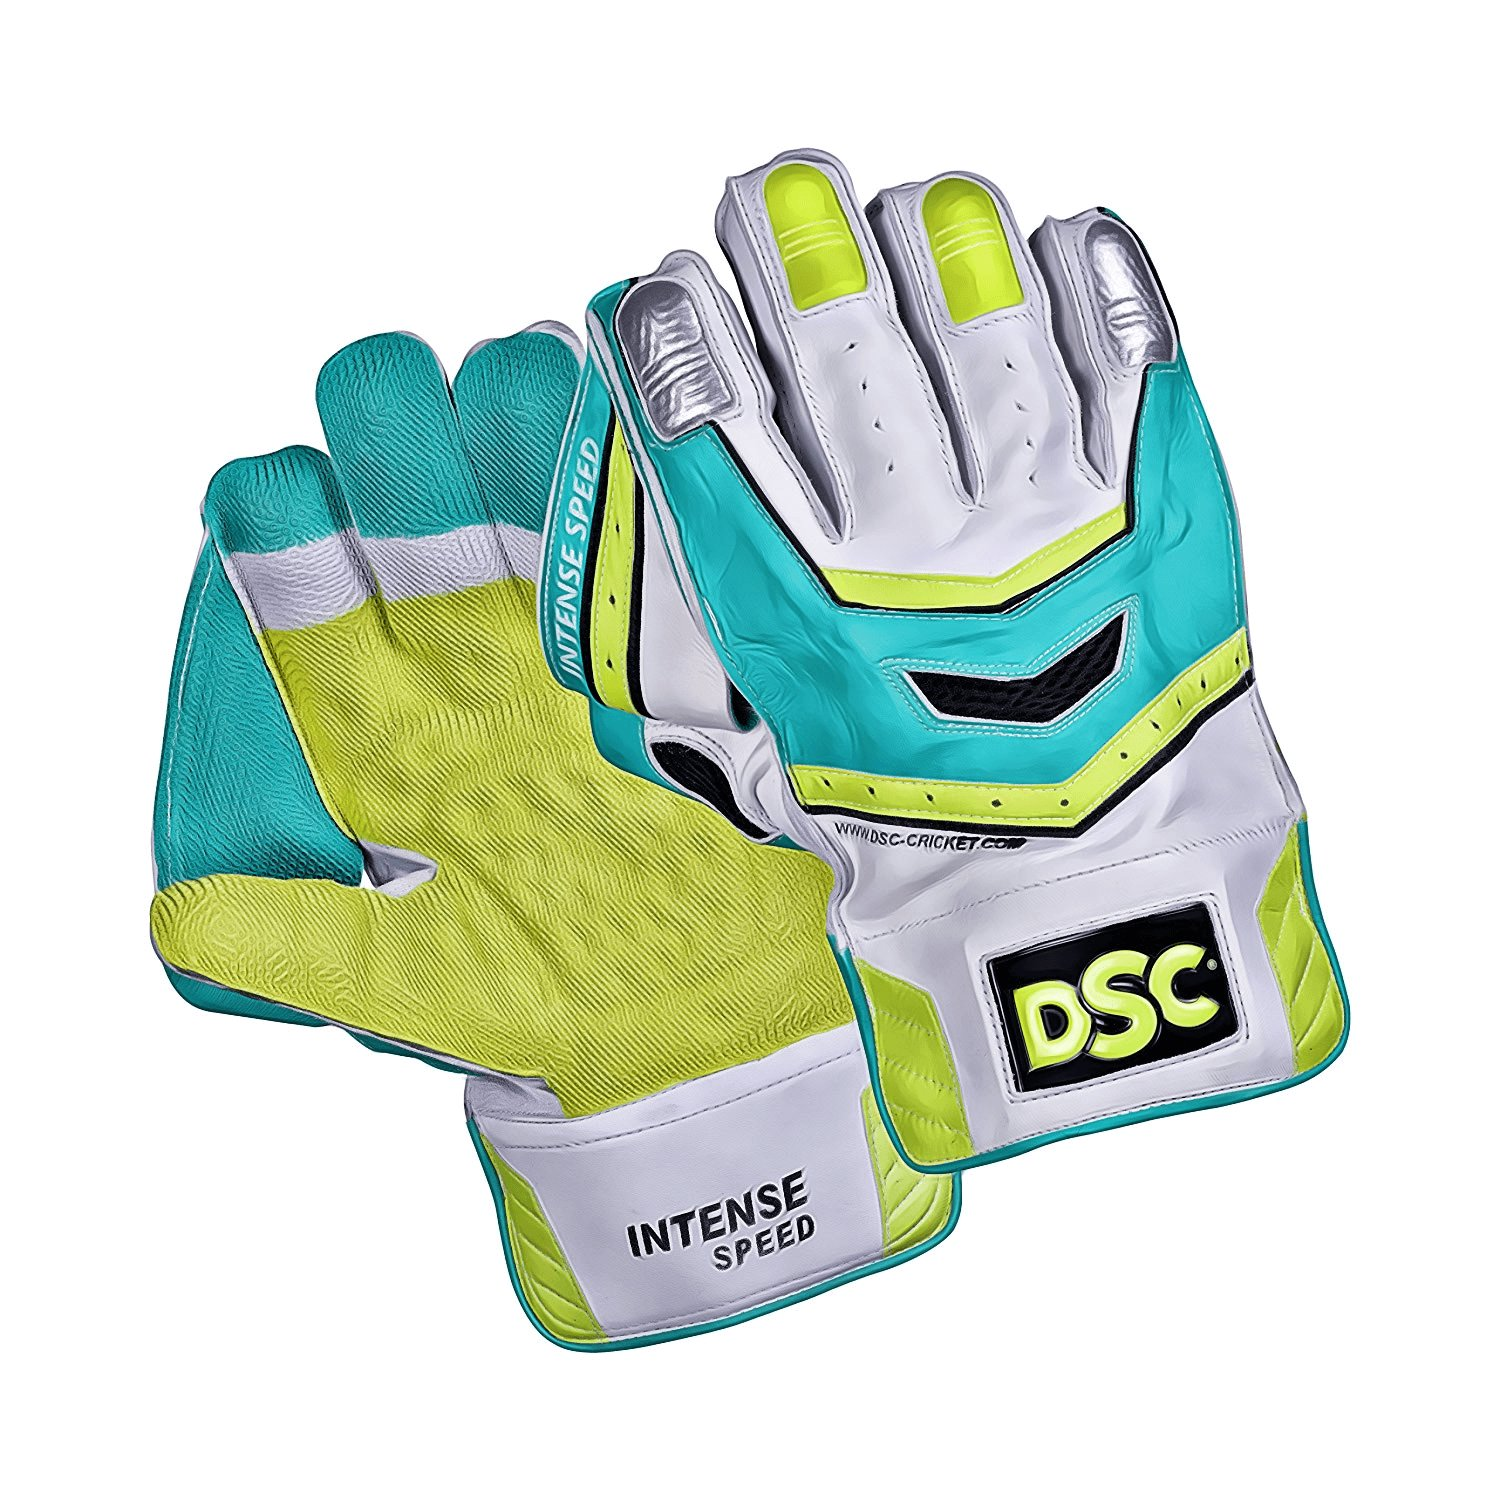 DSC Intense Speed Cricket Wicket Keeping Gloves